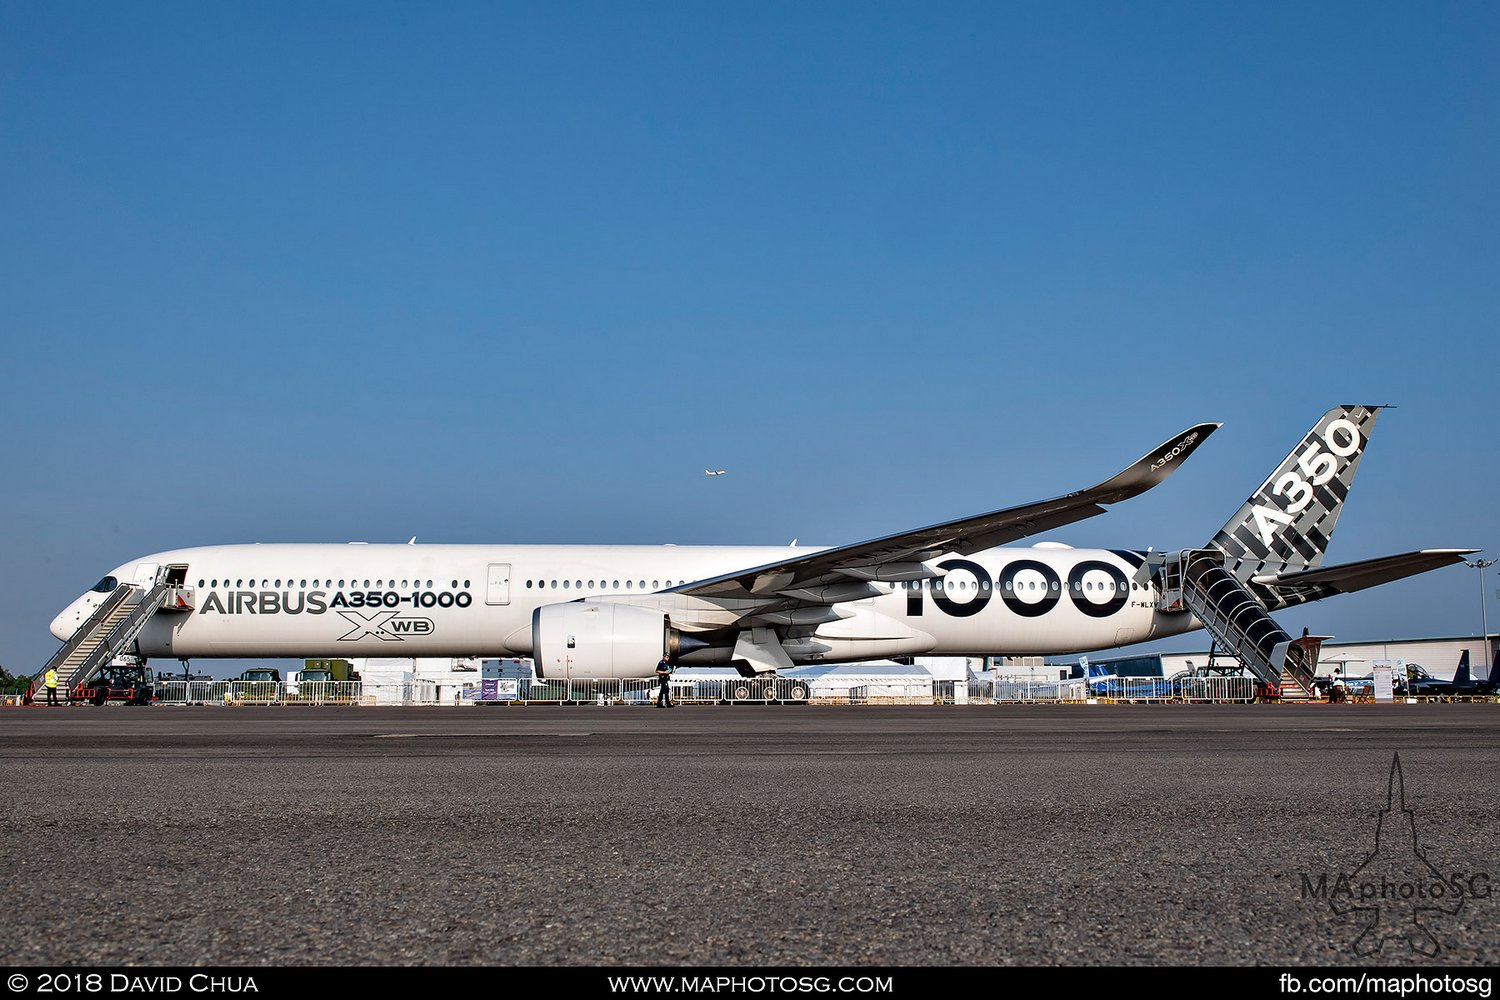 Airbus A350-1000 Carbon Livery (F-WLXV)